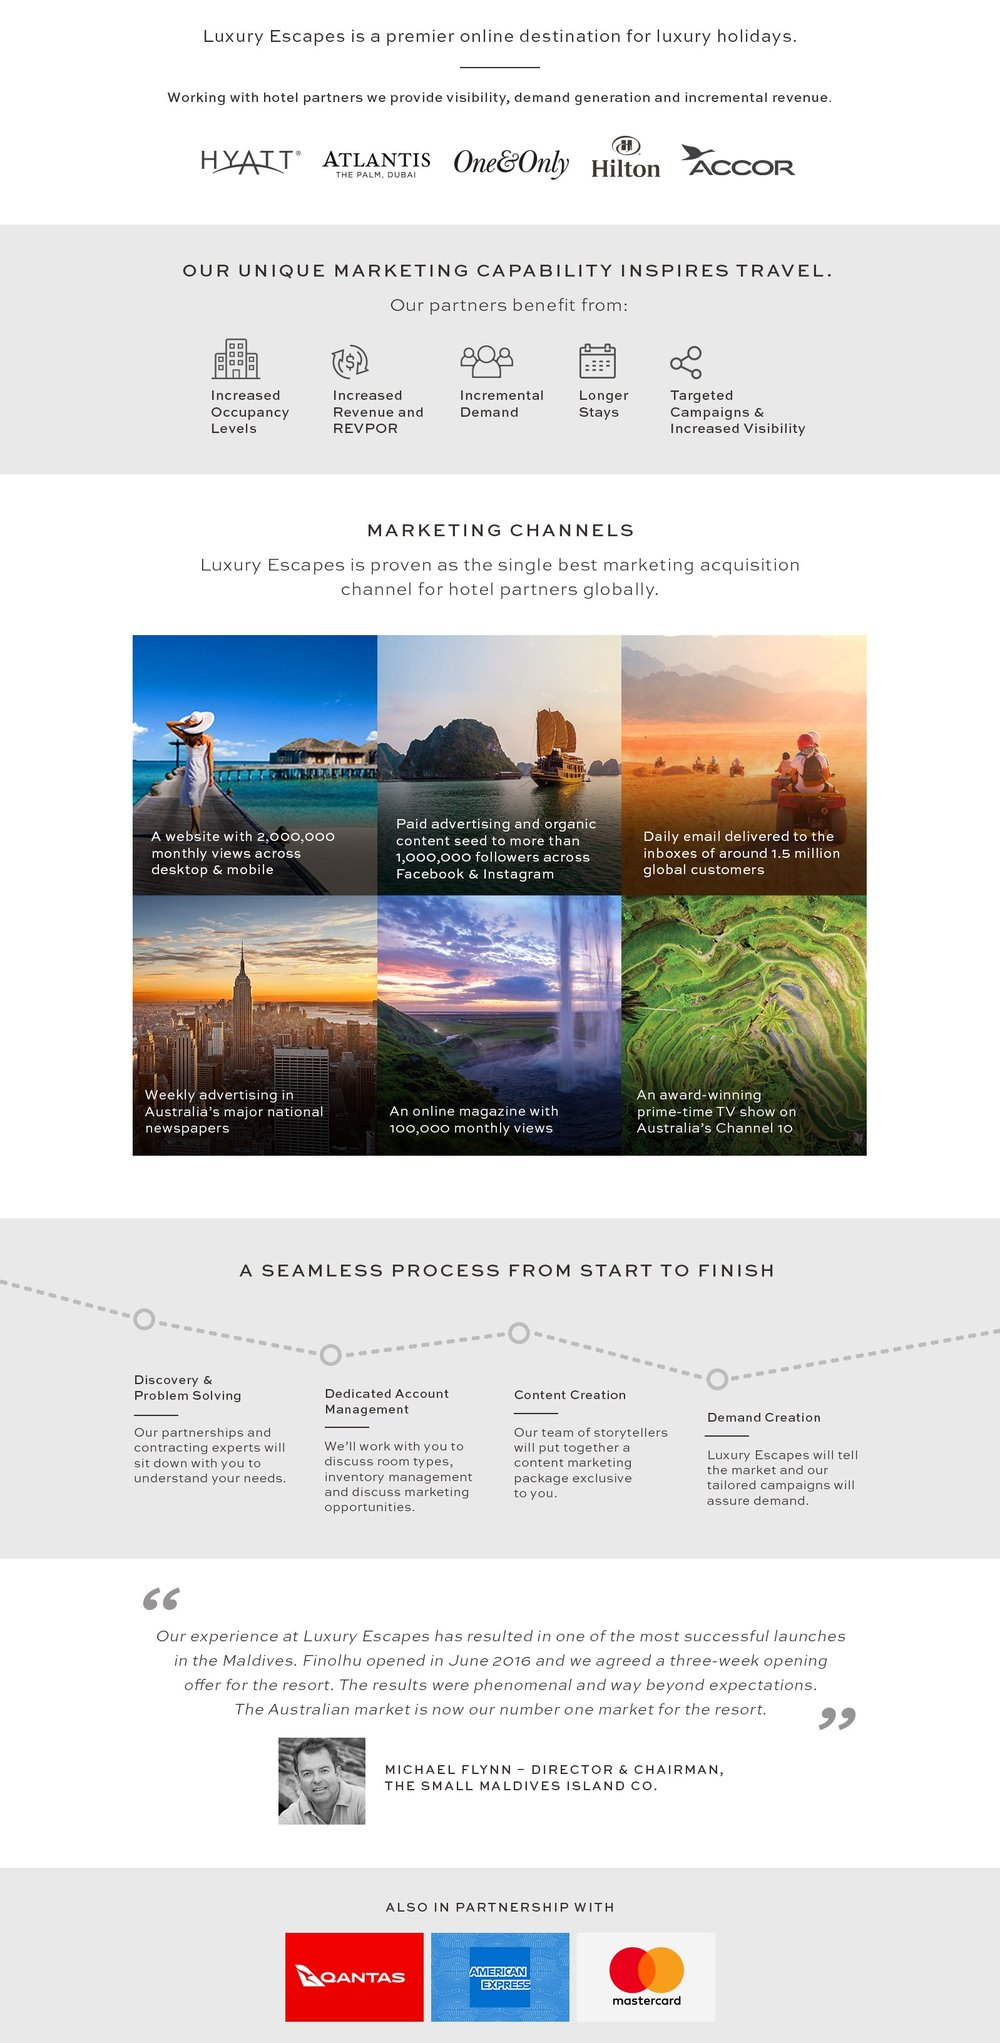 LE-Partner-Landing-Page_No-CTLinks (007) (003).jpg